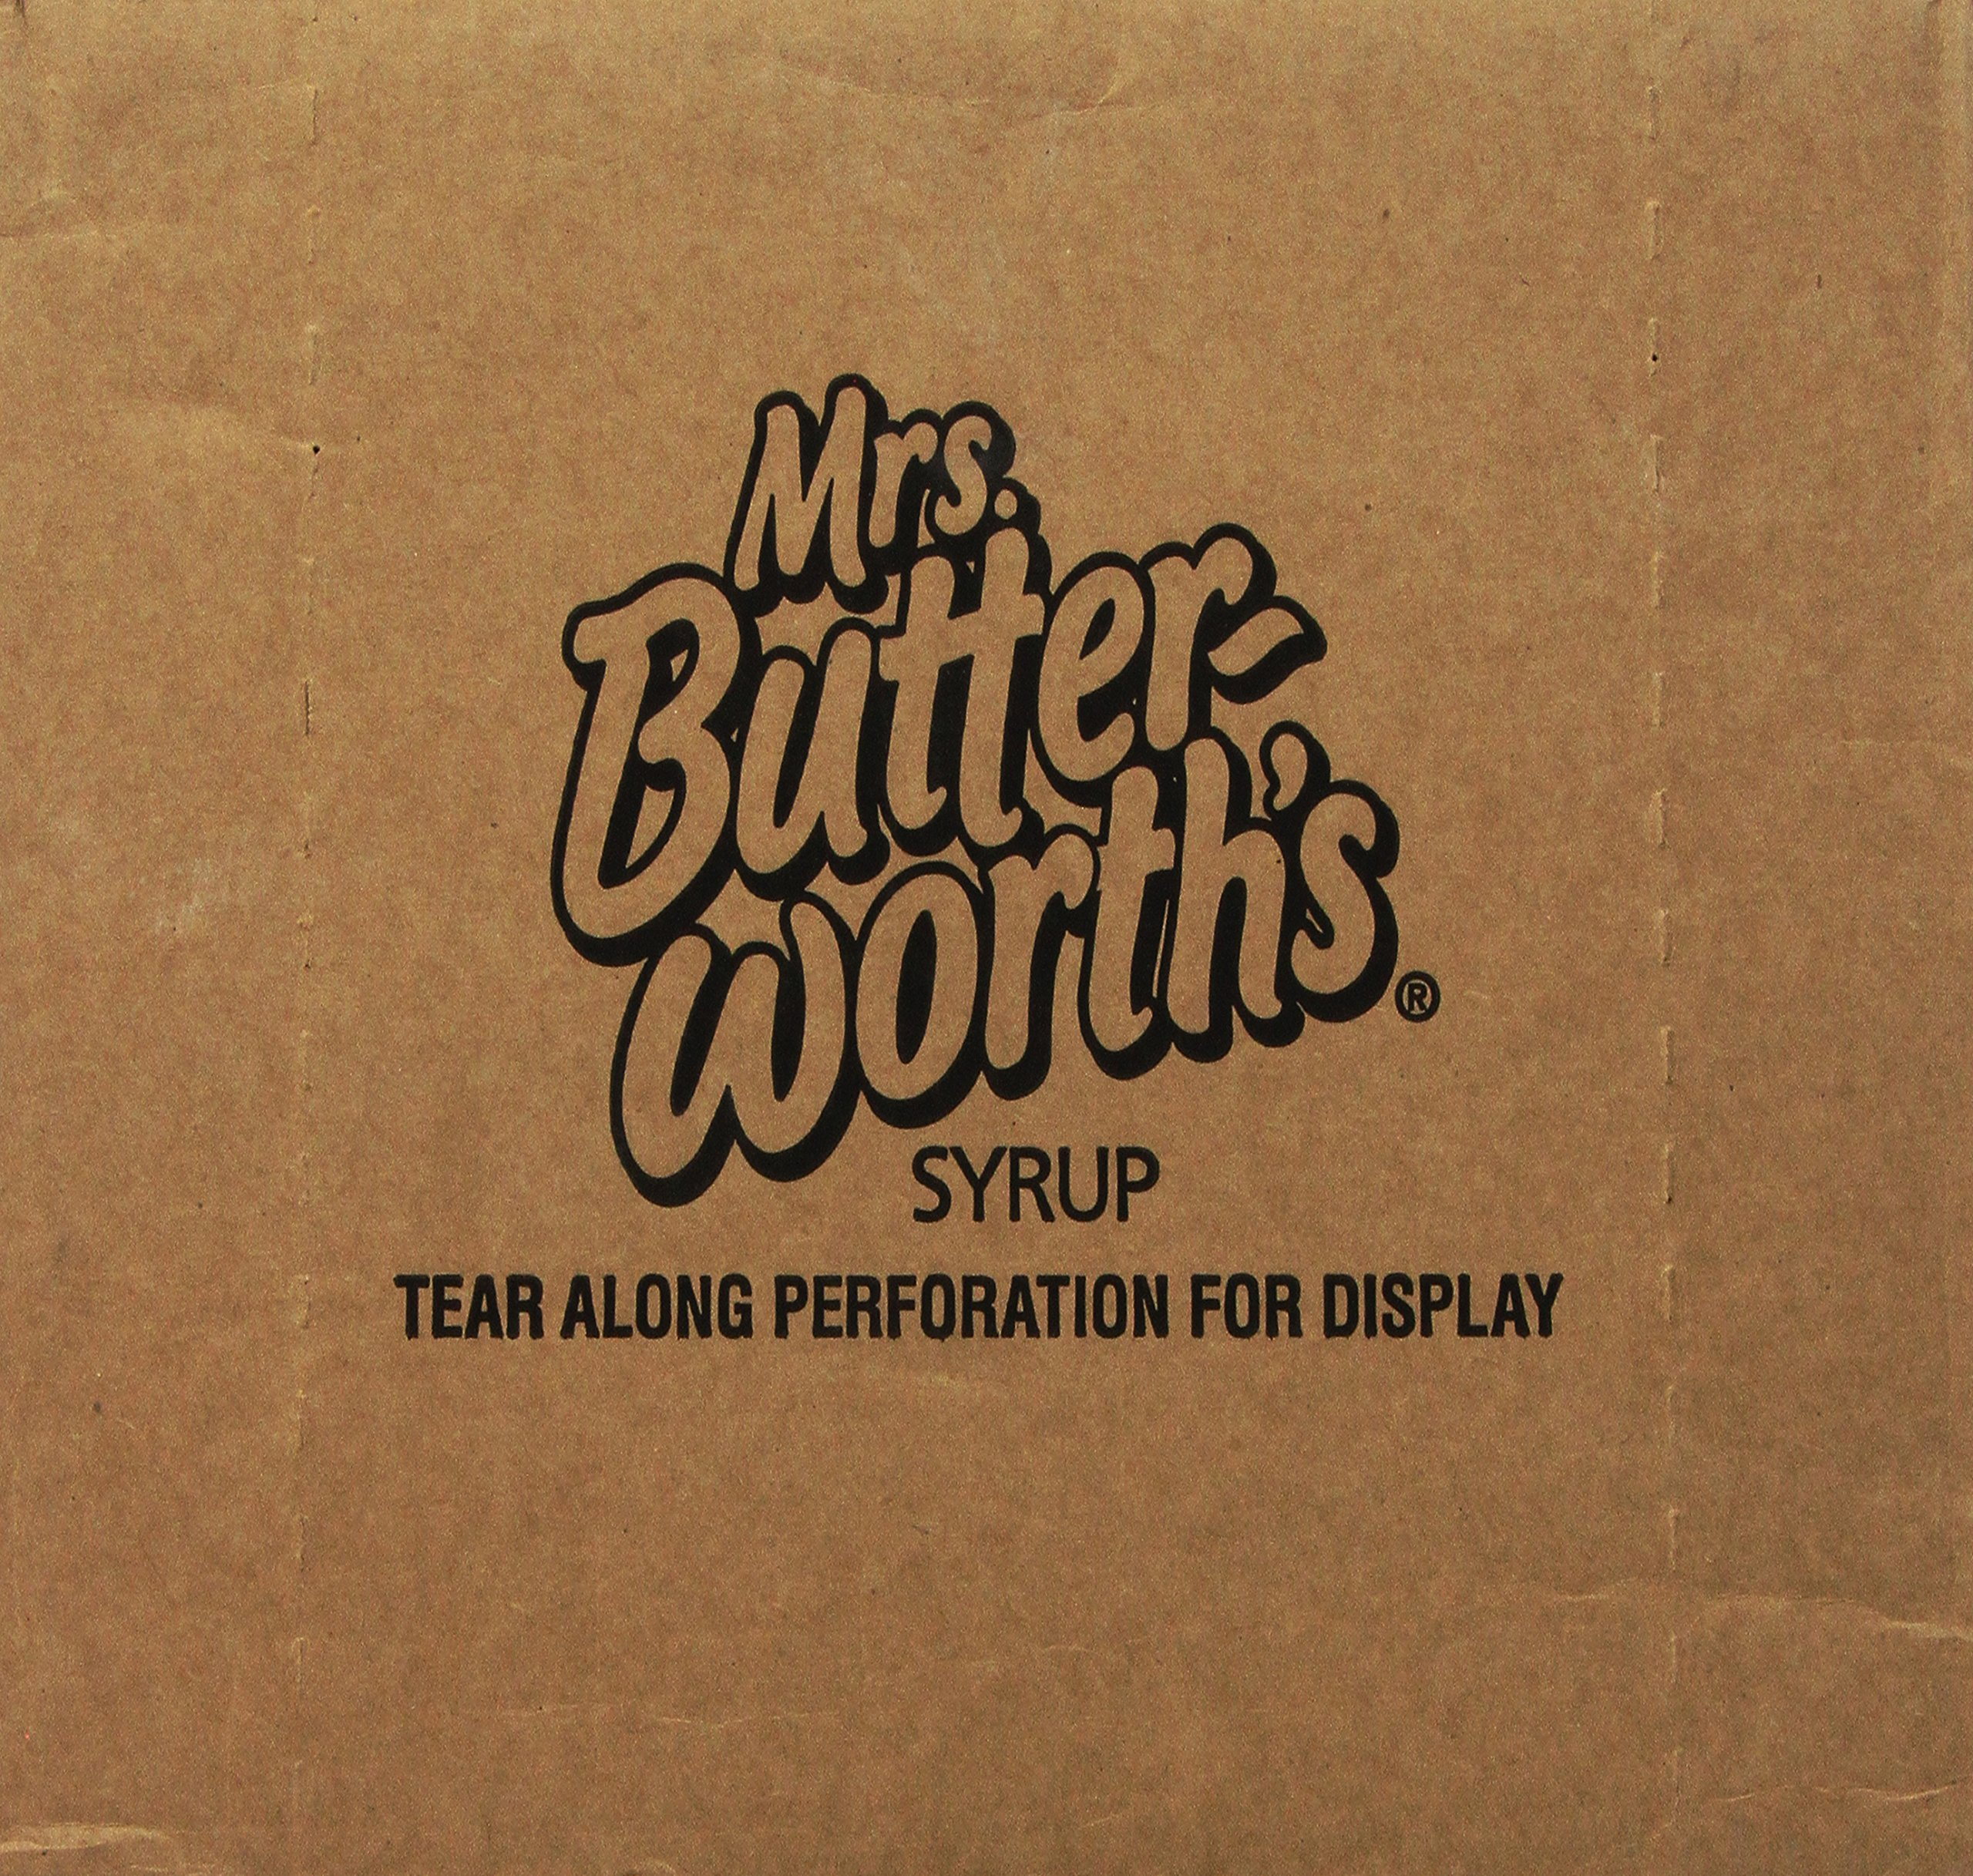 Mrs. Butterworth's Syrup, Original, 24 Ounce (Pack of 12) by Mrs. Butterworth